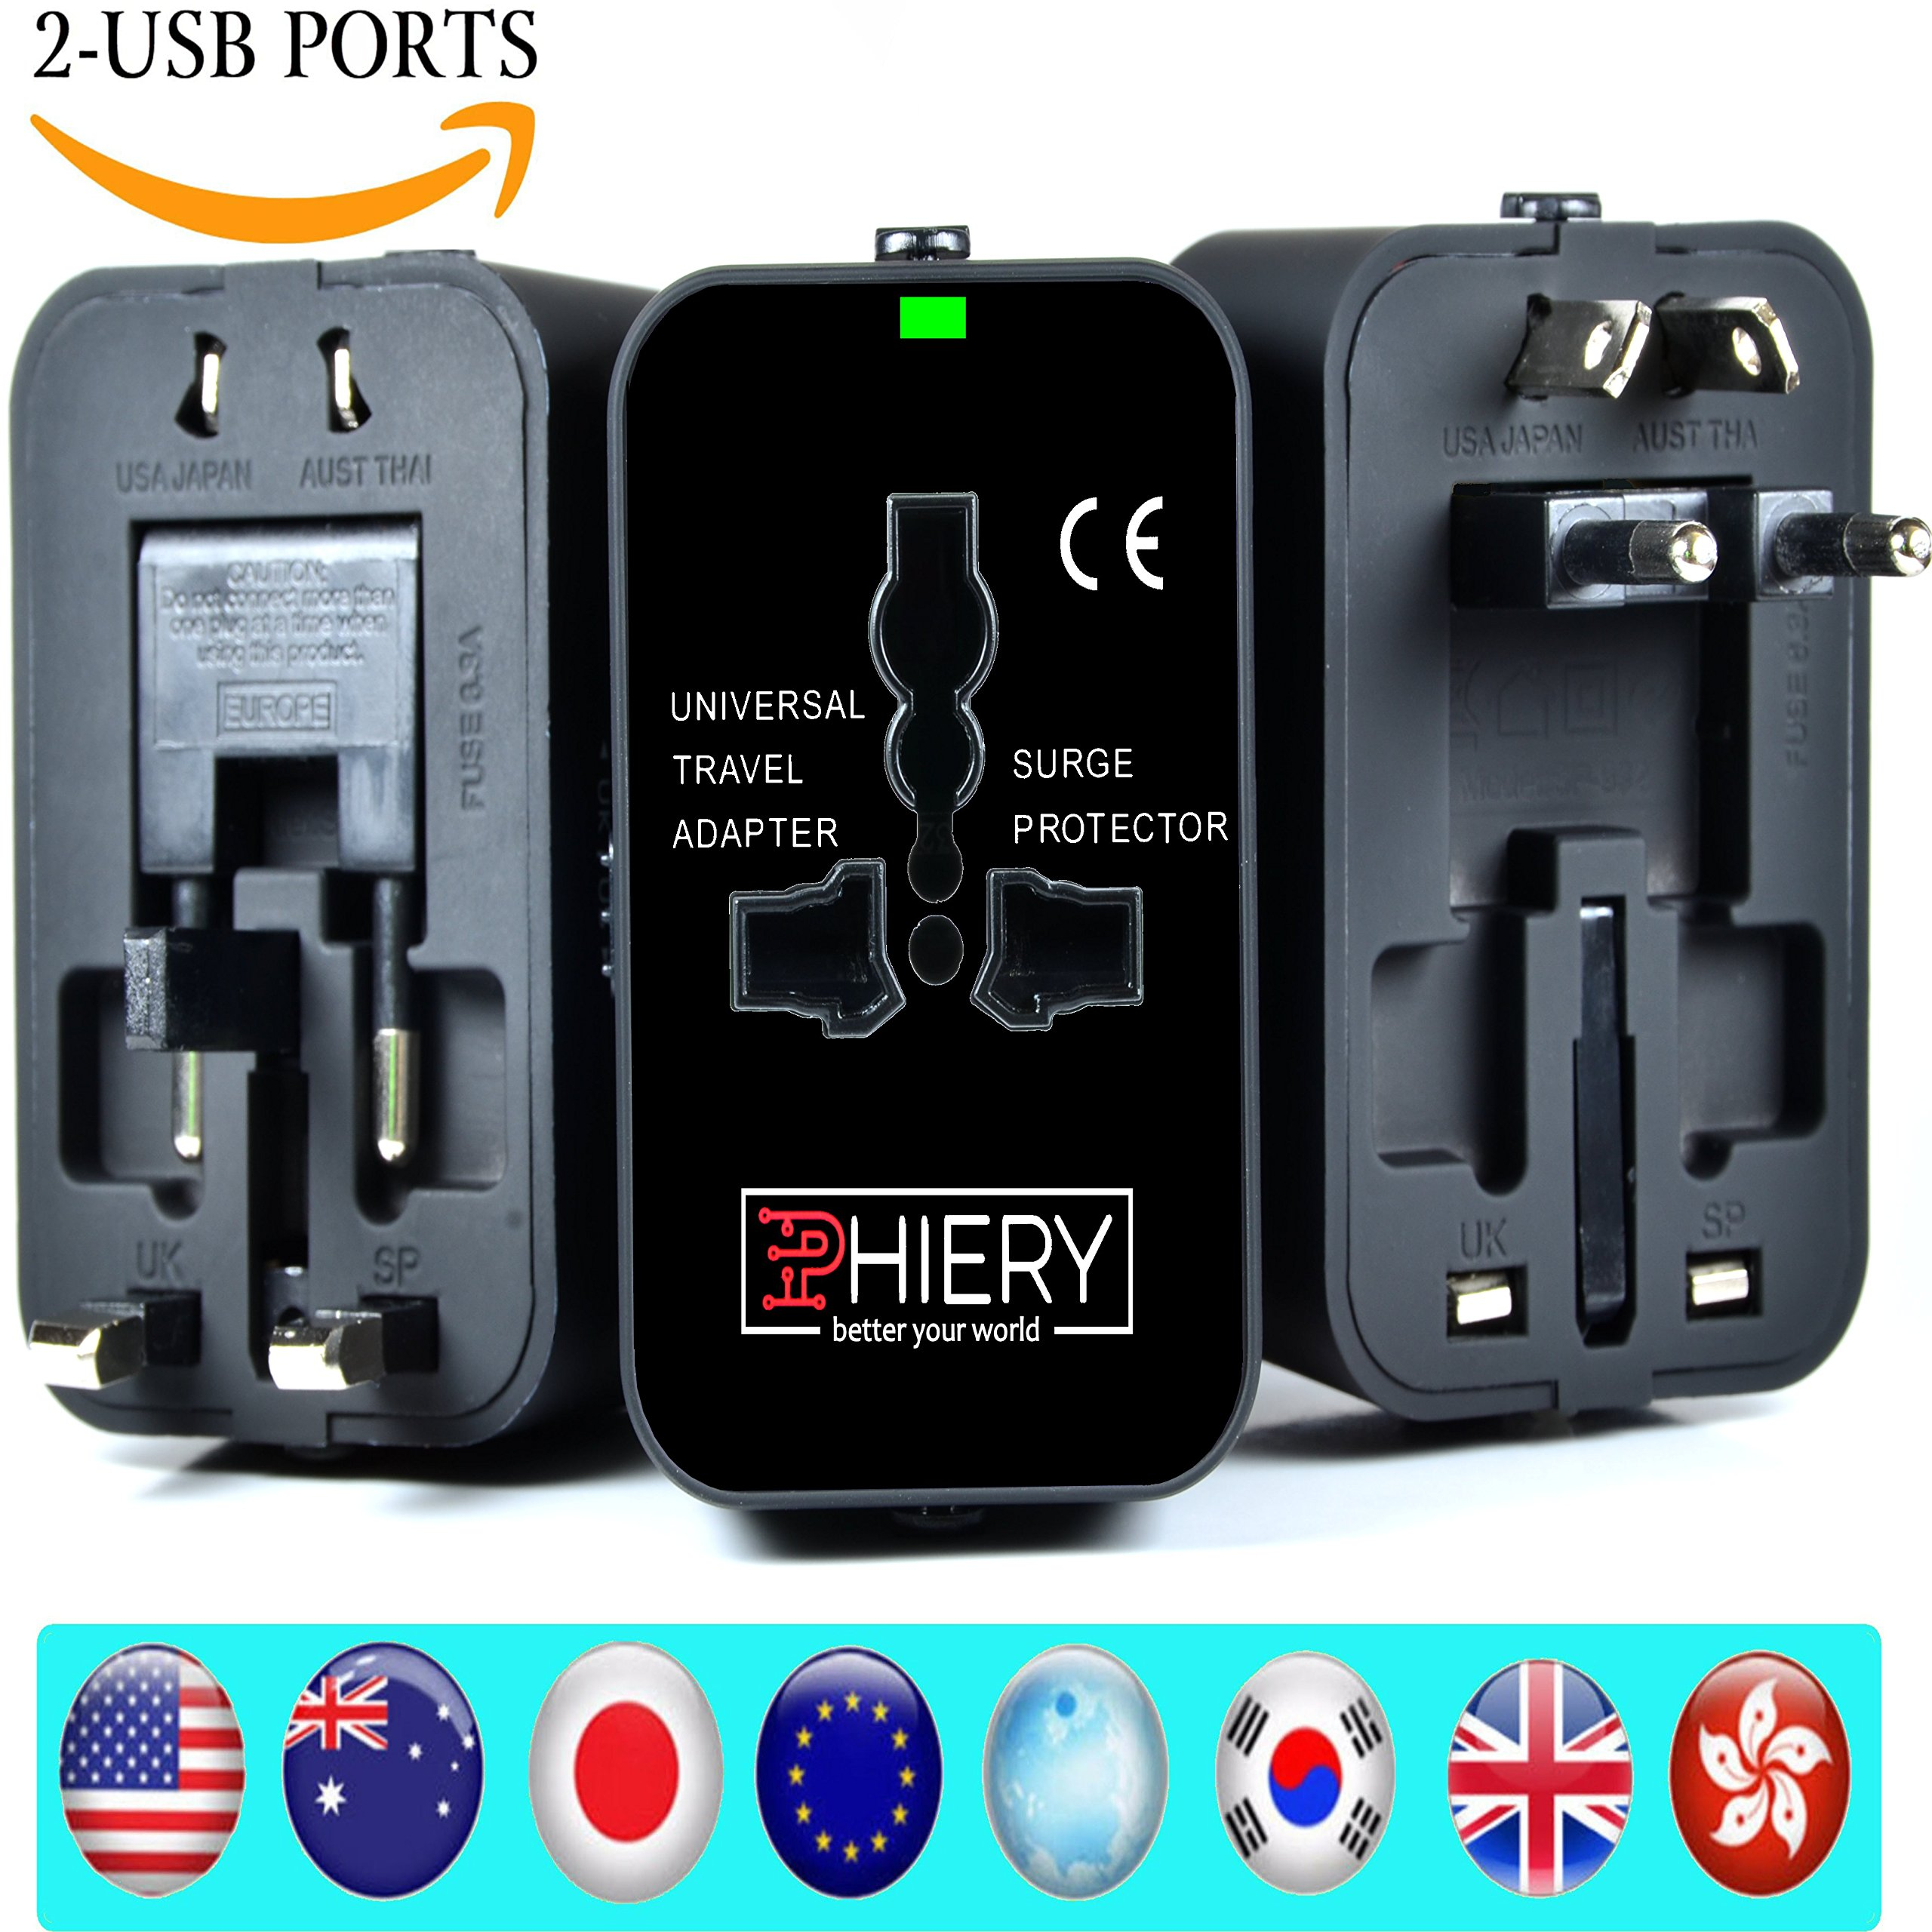 PHIERY Universal Travel Adapter, International Power Adapter Plug and European Wall Charger (USA, UK, EU, AU, US, Europe, Asia) Dual USB to 2.1A 1.0A, Travel Accessories Pouch - Better Your World